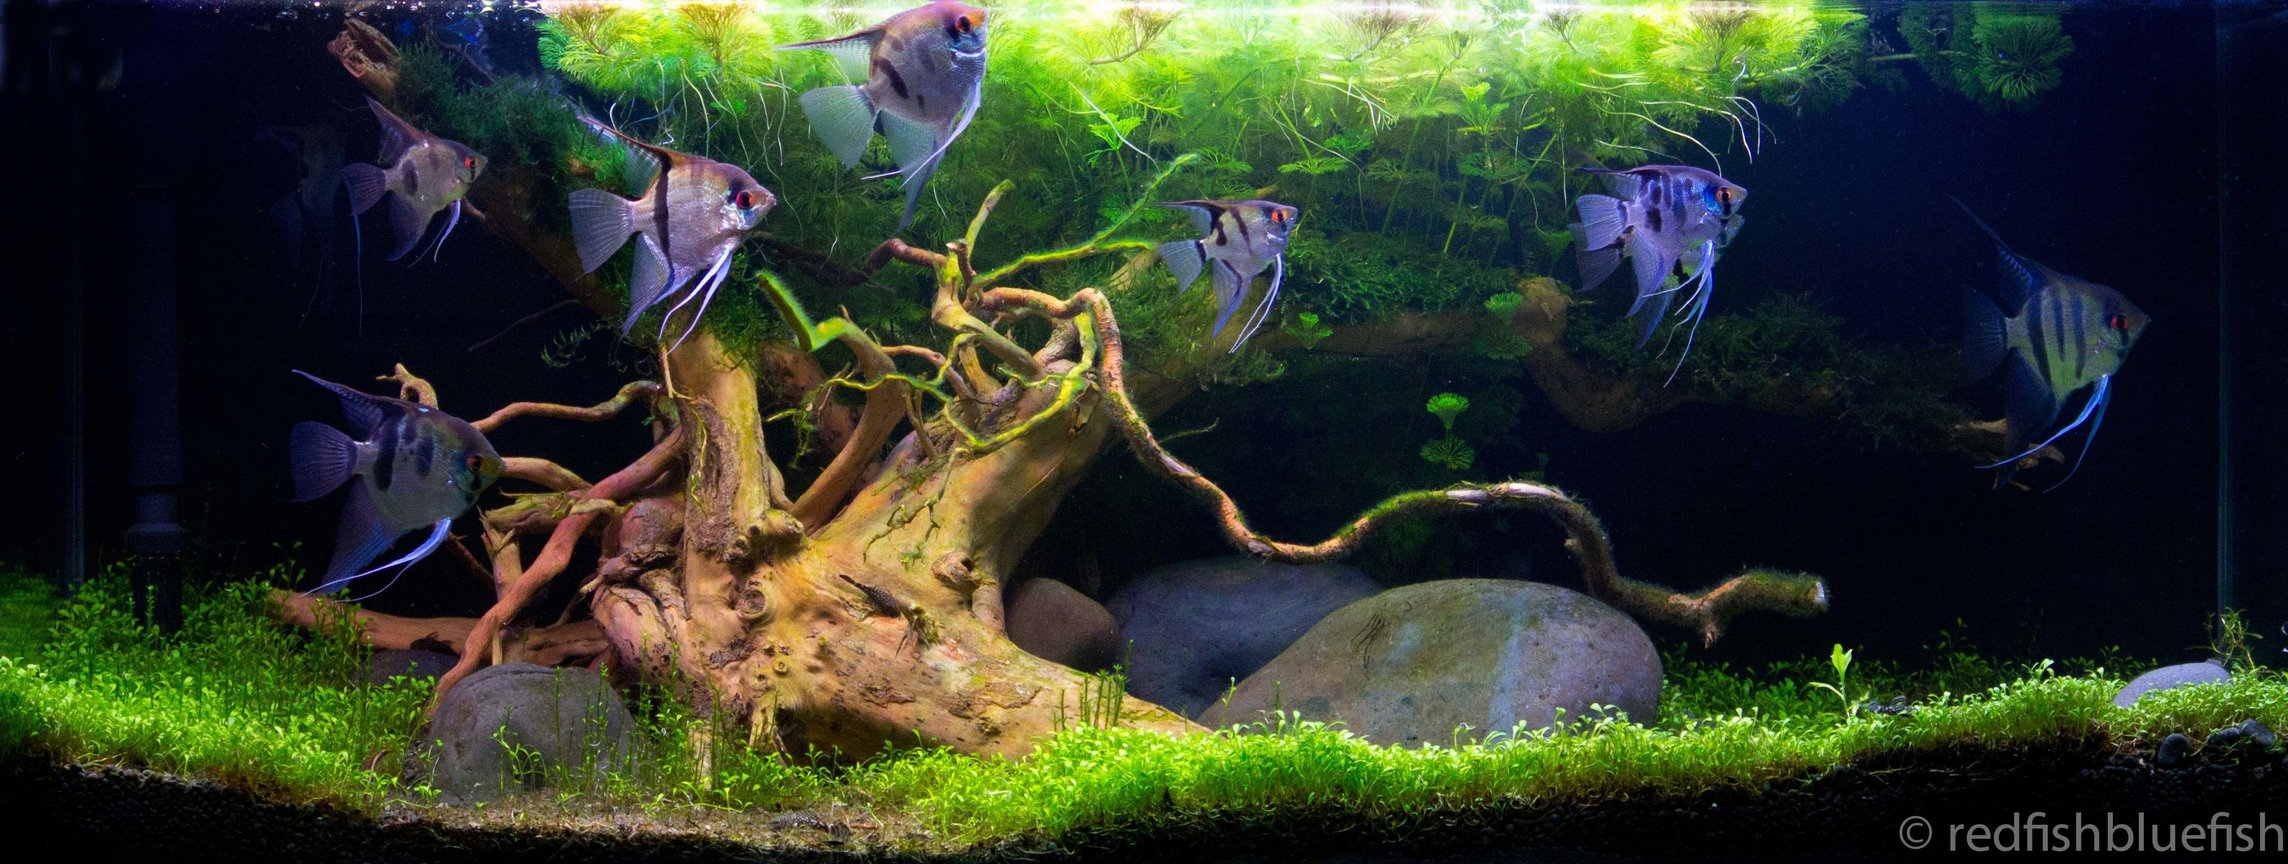 31 gallons planted tank (mostly live plants and fish) - Great Oak